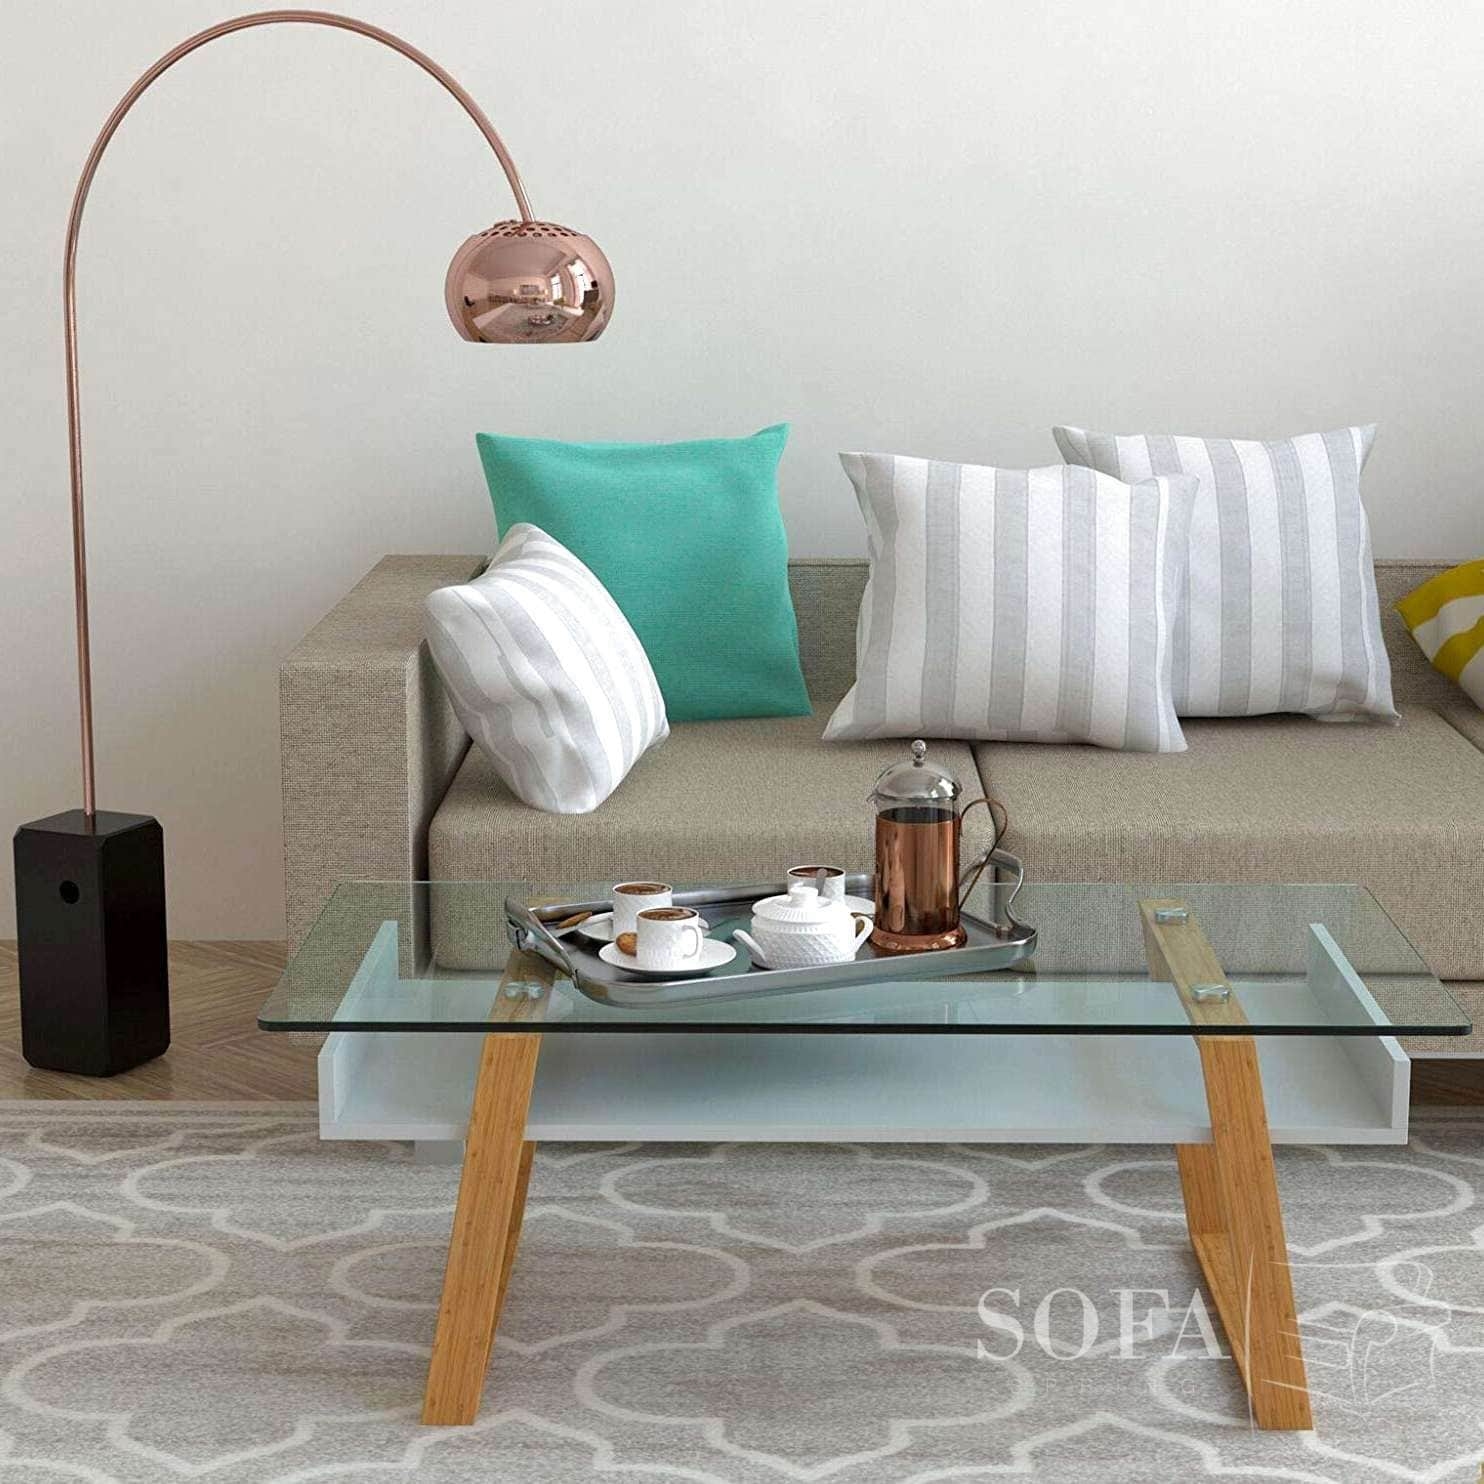 Best Minimalist Coffee Tables Of 2020 Simple Elegant